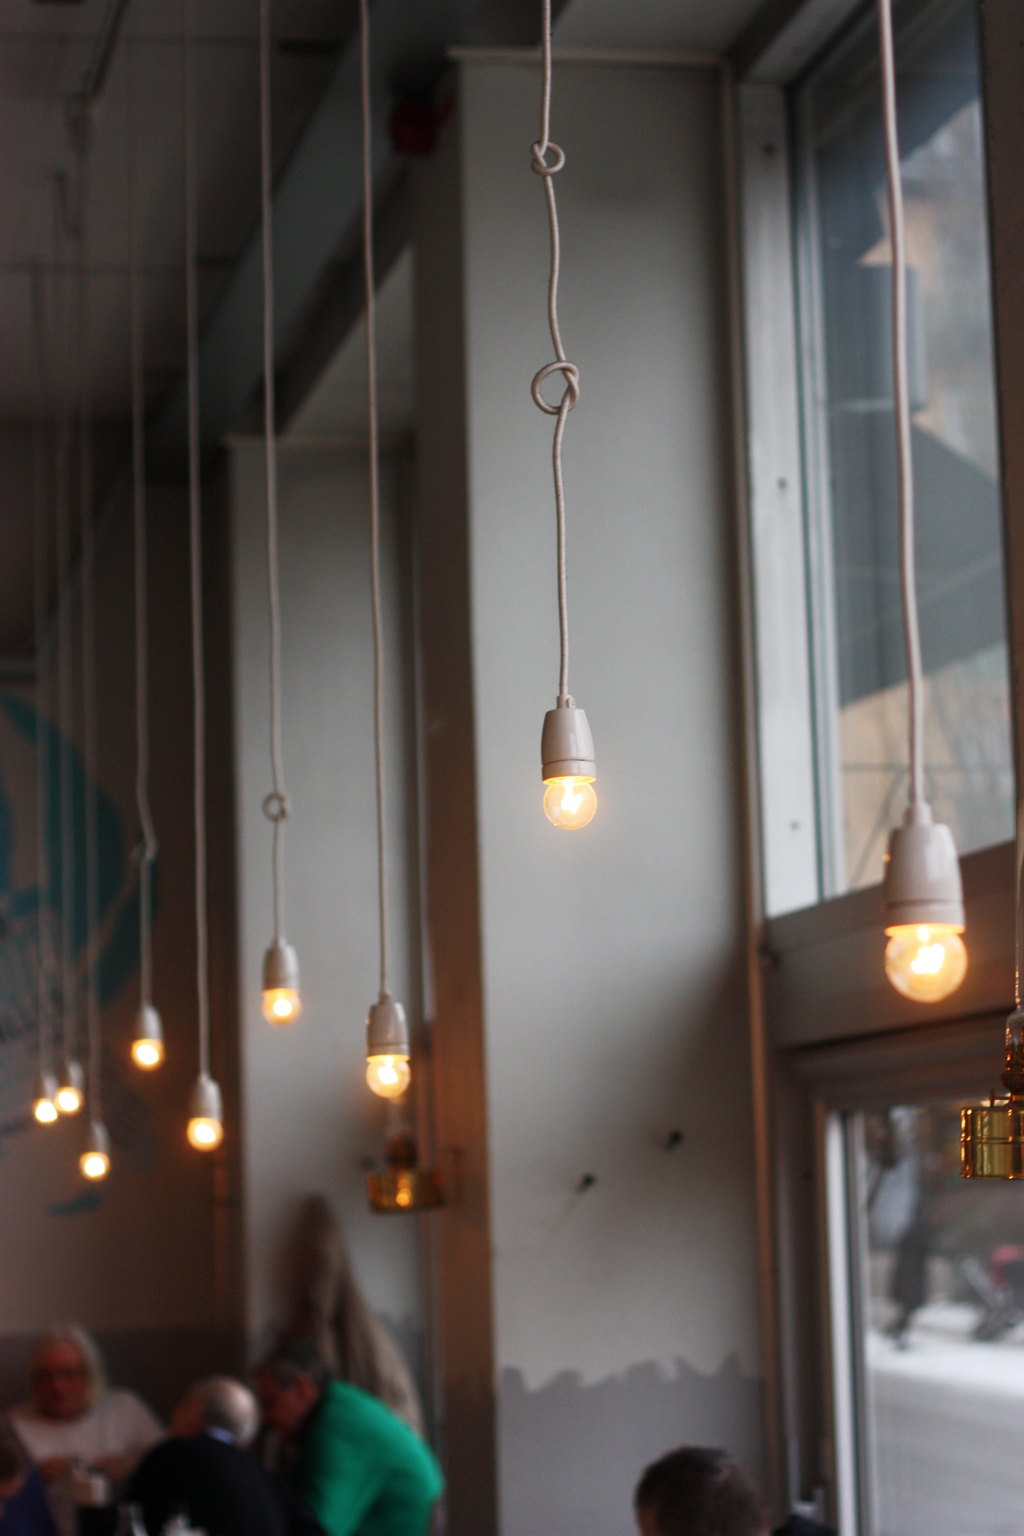 Lamps inside-urban-deli-by-madame-love